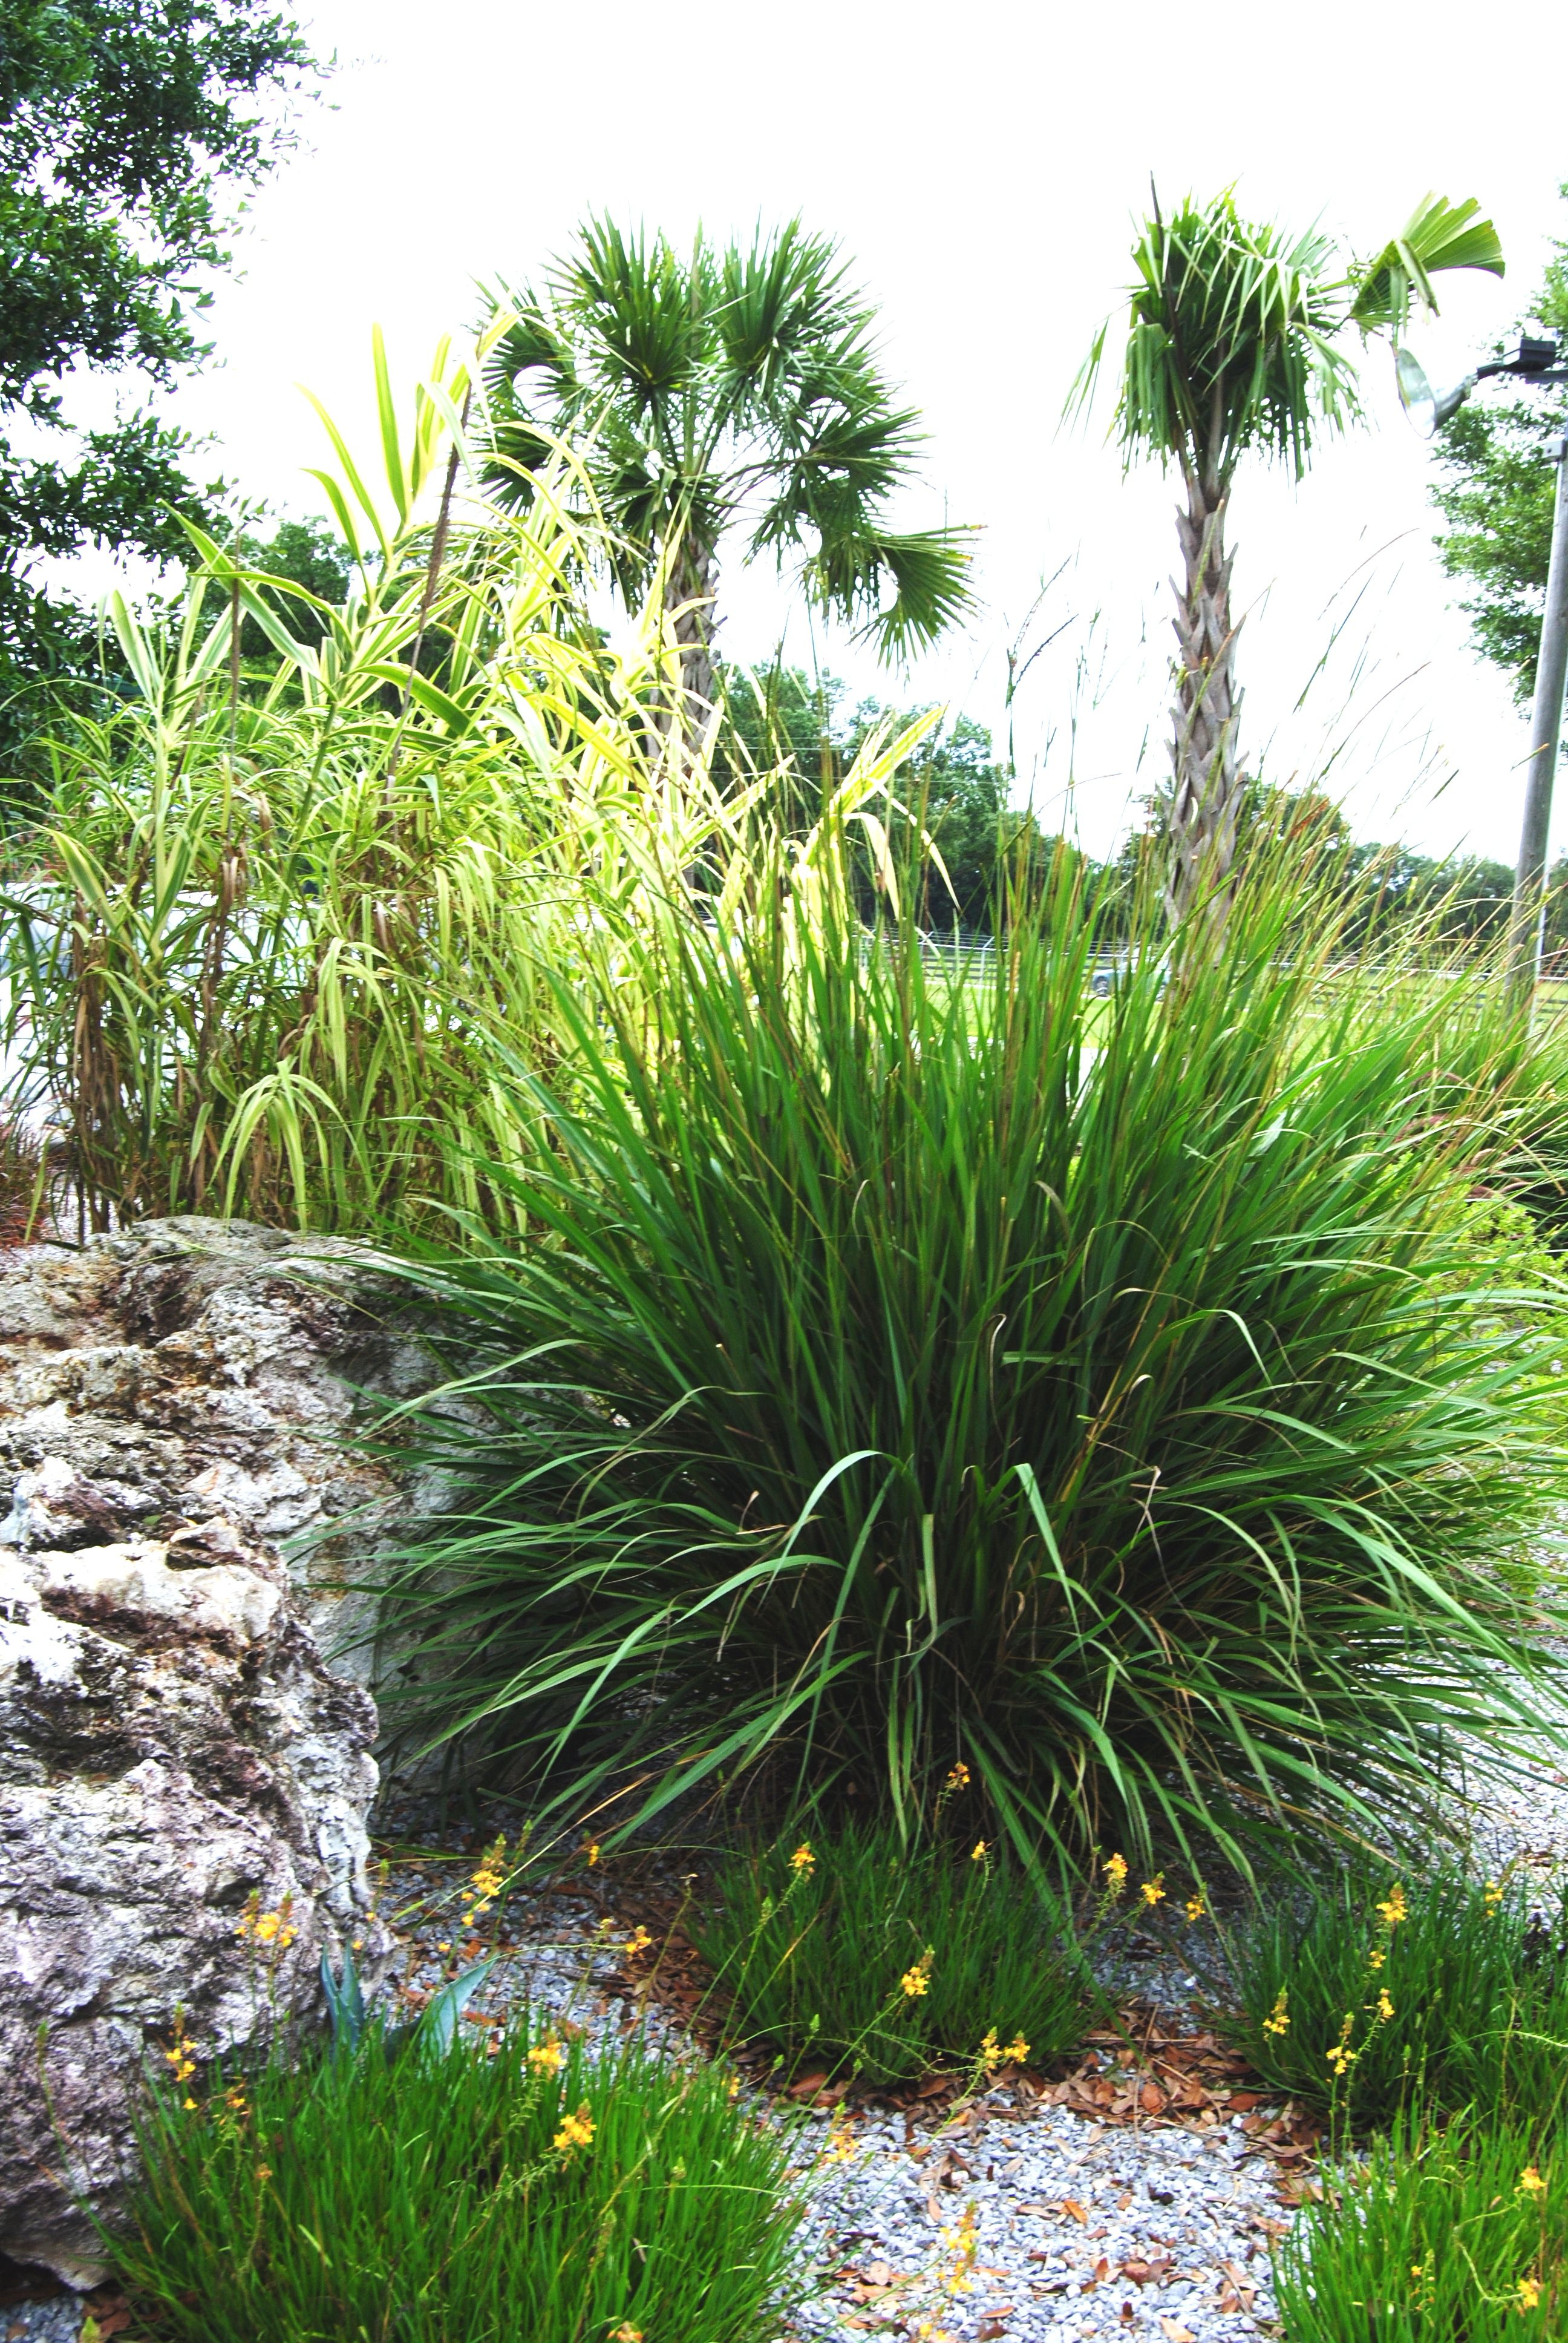 Miniature ornamental grasses - Fakahatchee Grass Giant Cane And Dianella Located At Plant Science Research Unit In